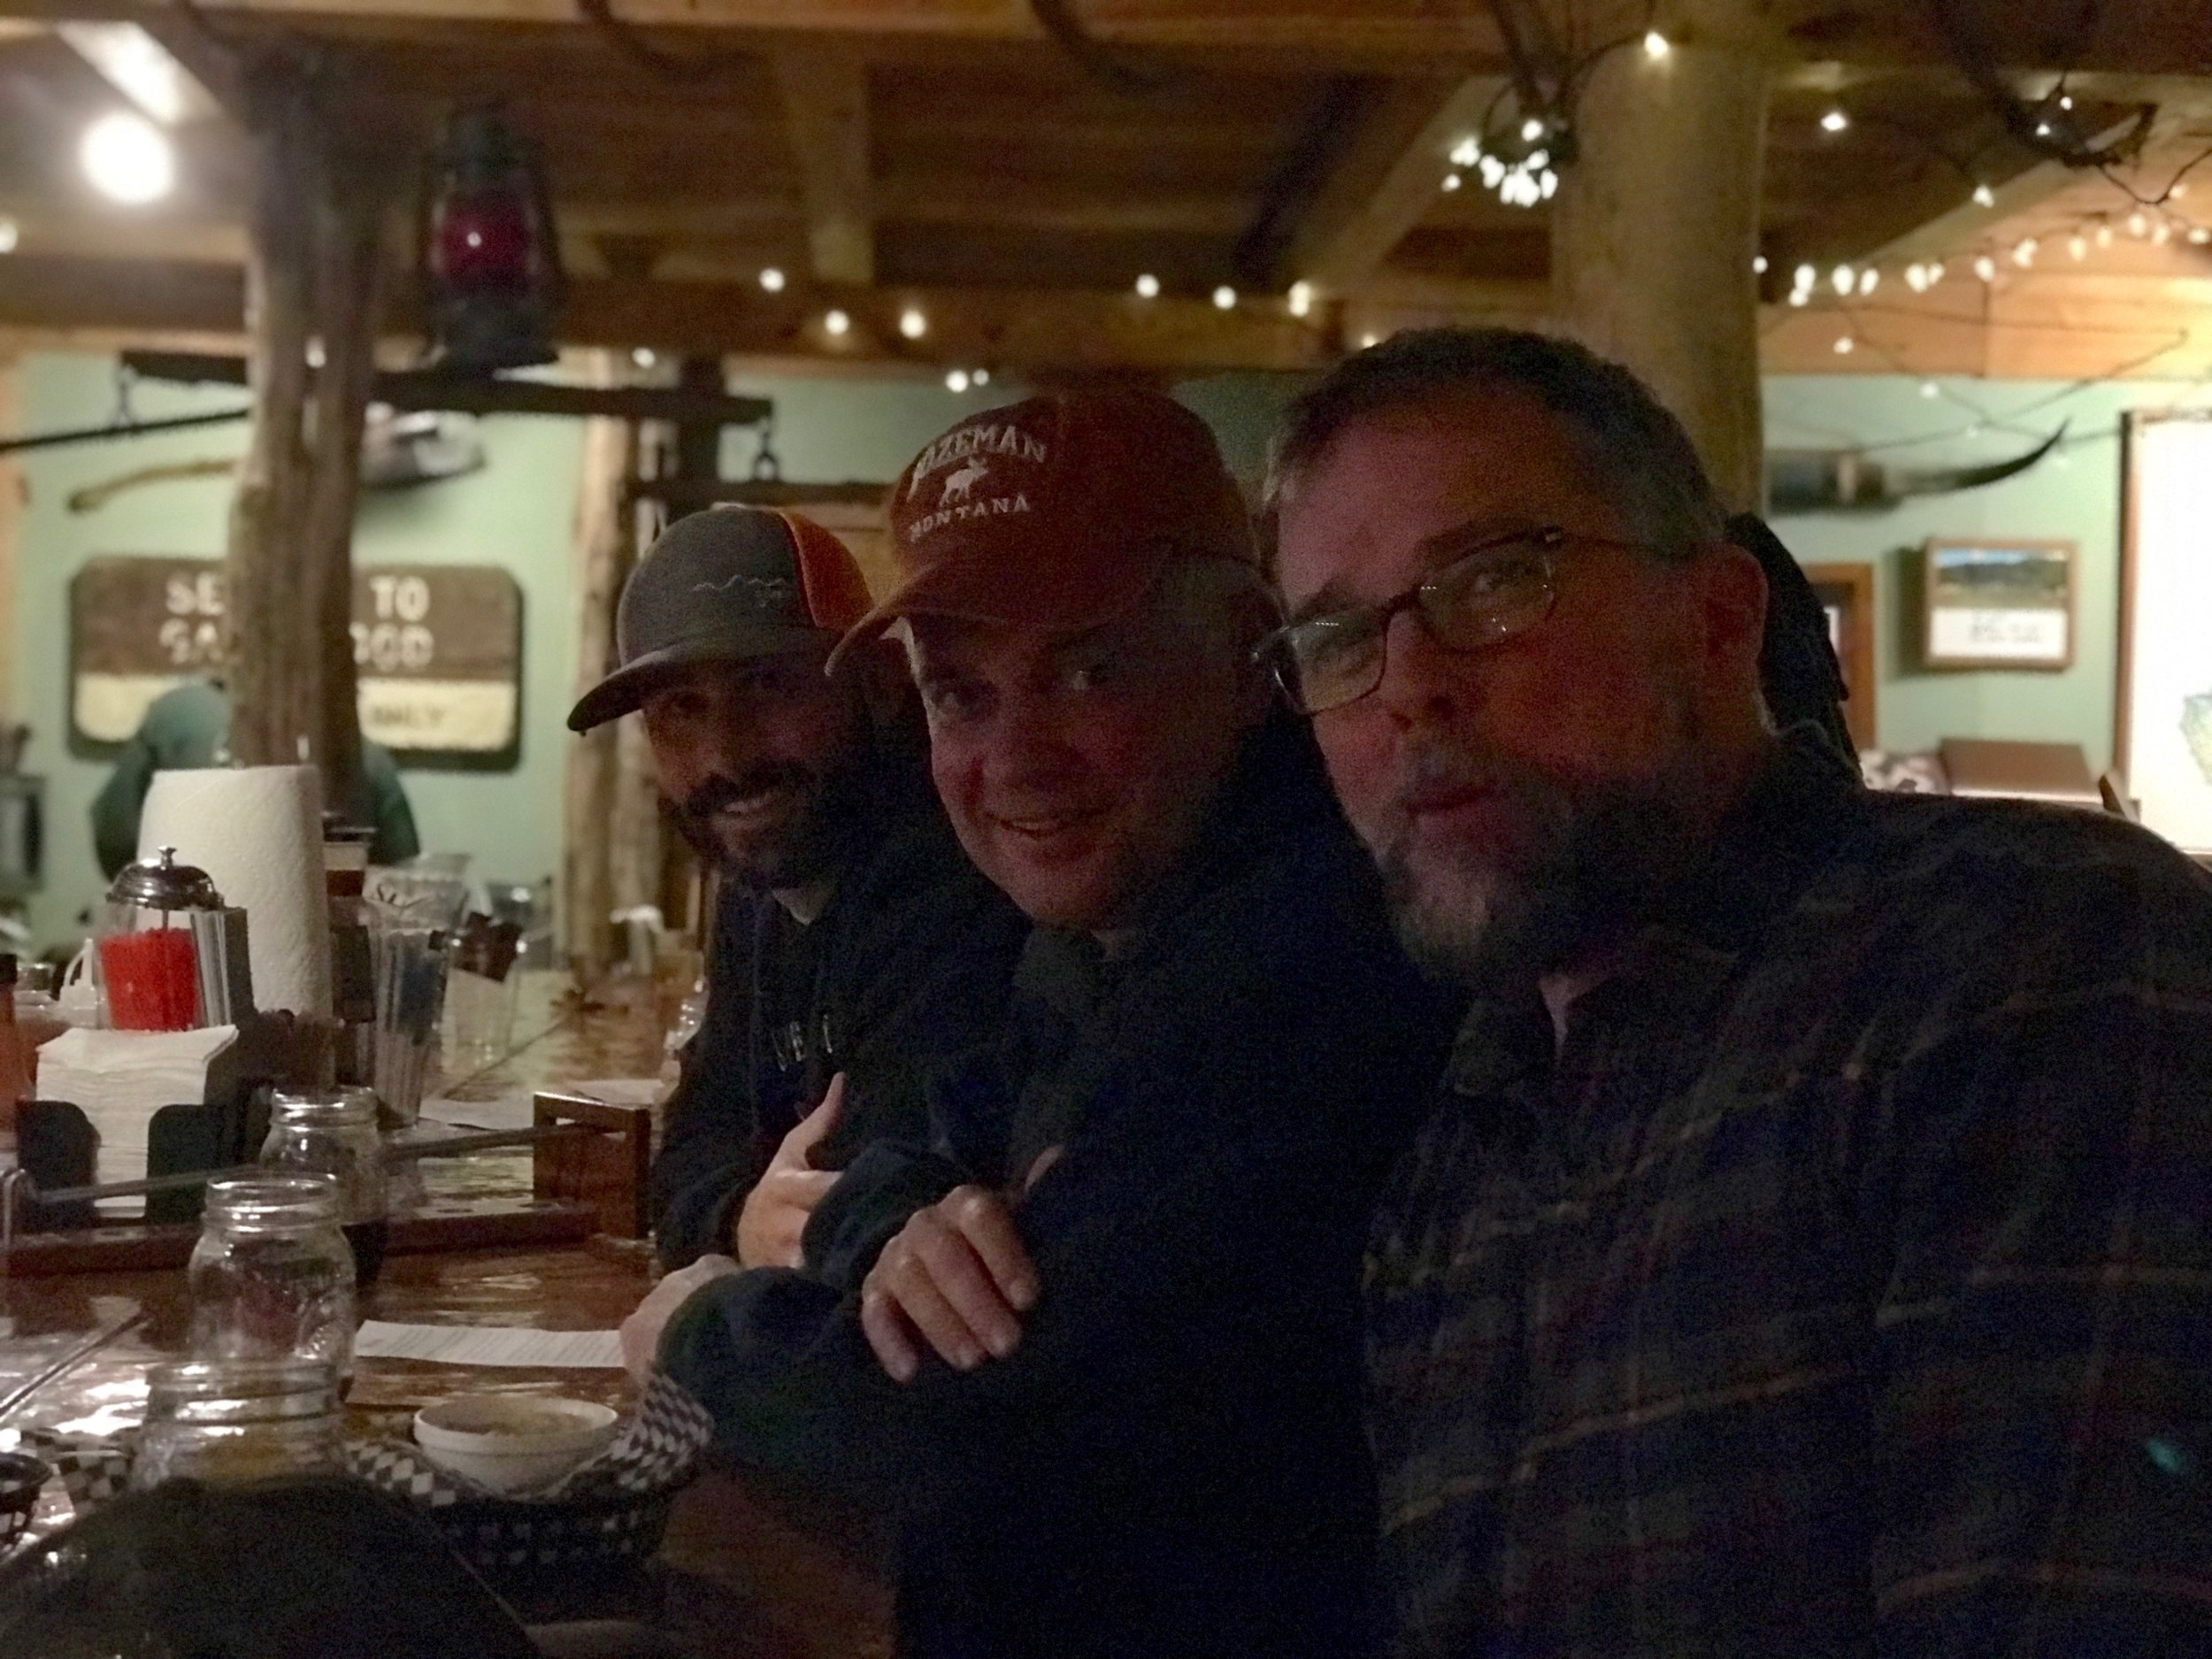 Celebrating the end of a first celestial day of friendship and adventure in a terrific West Virginian mountain town brewery (photo credit: John Feasel /  Arrowhead Outdoors )